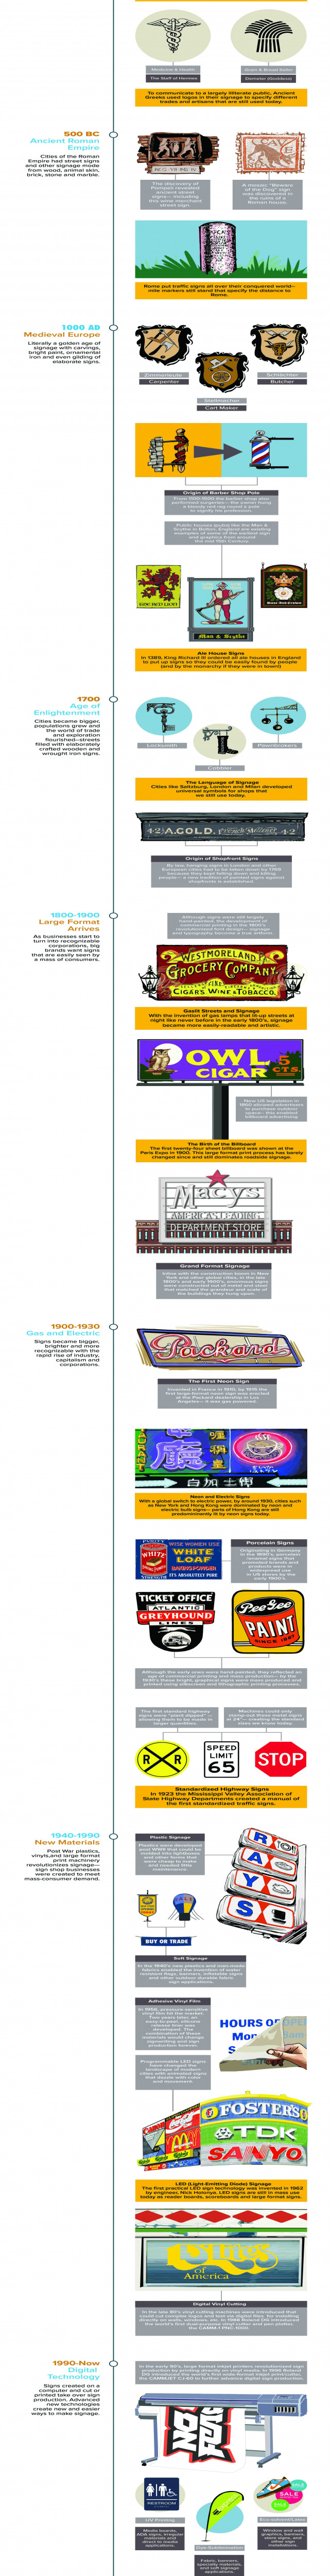 History of Signs infographic